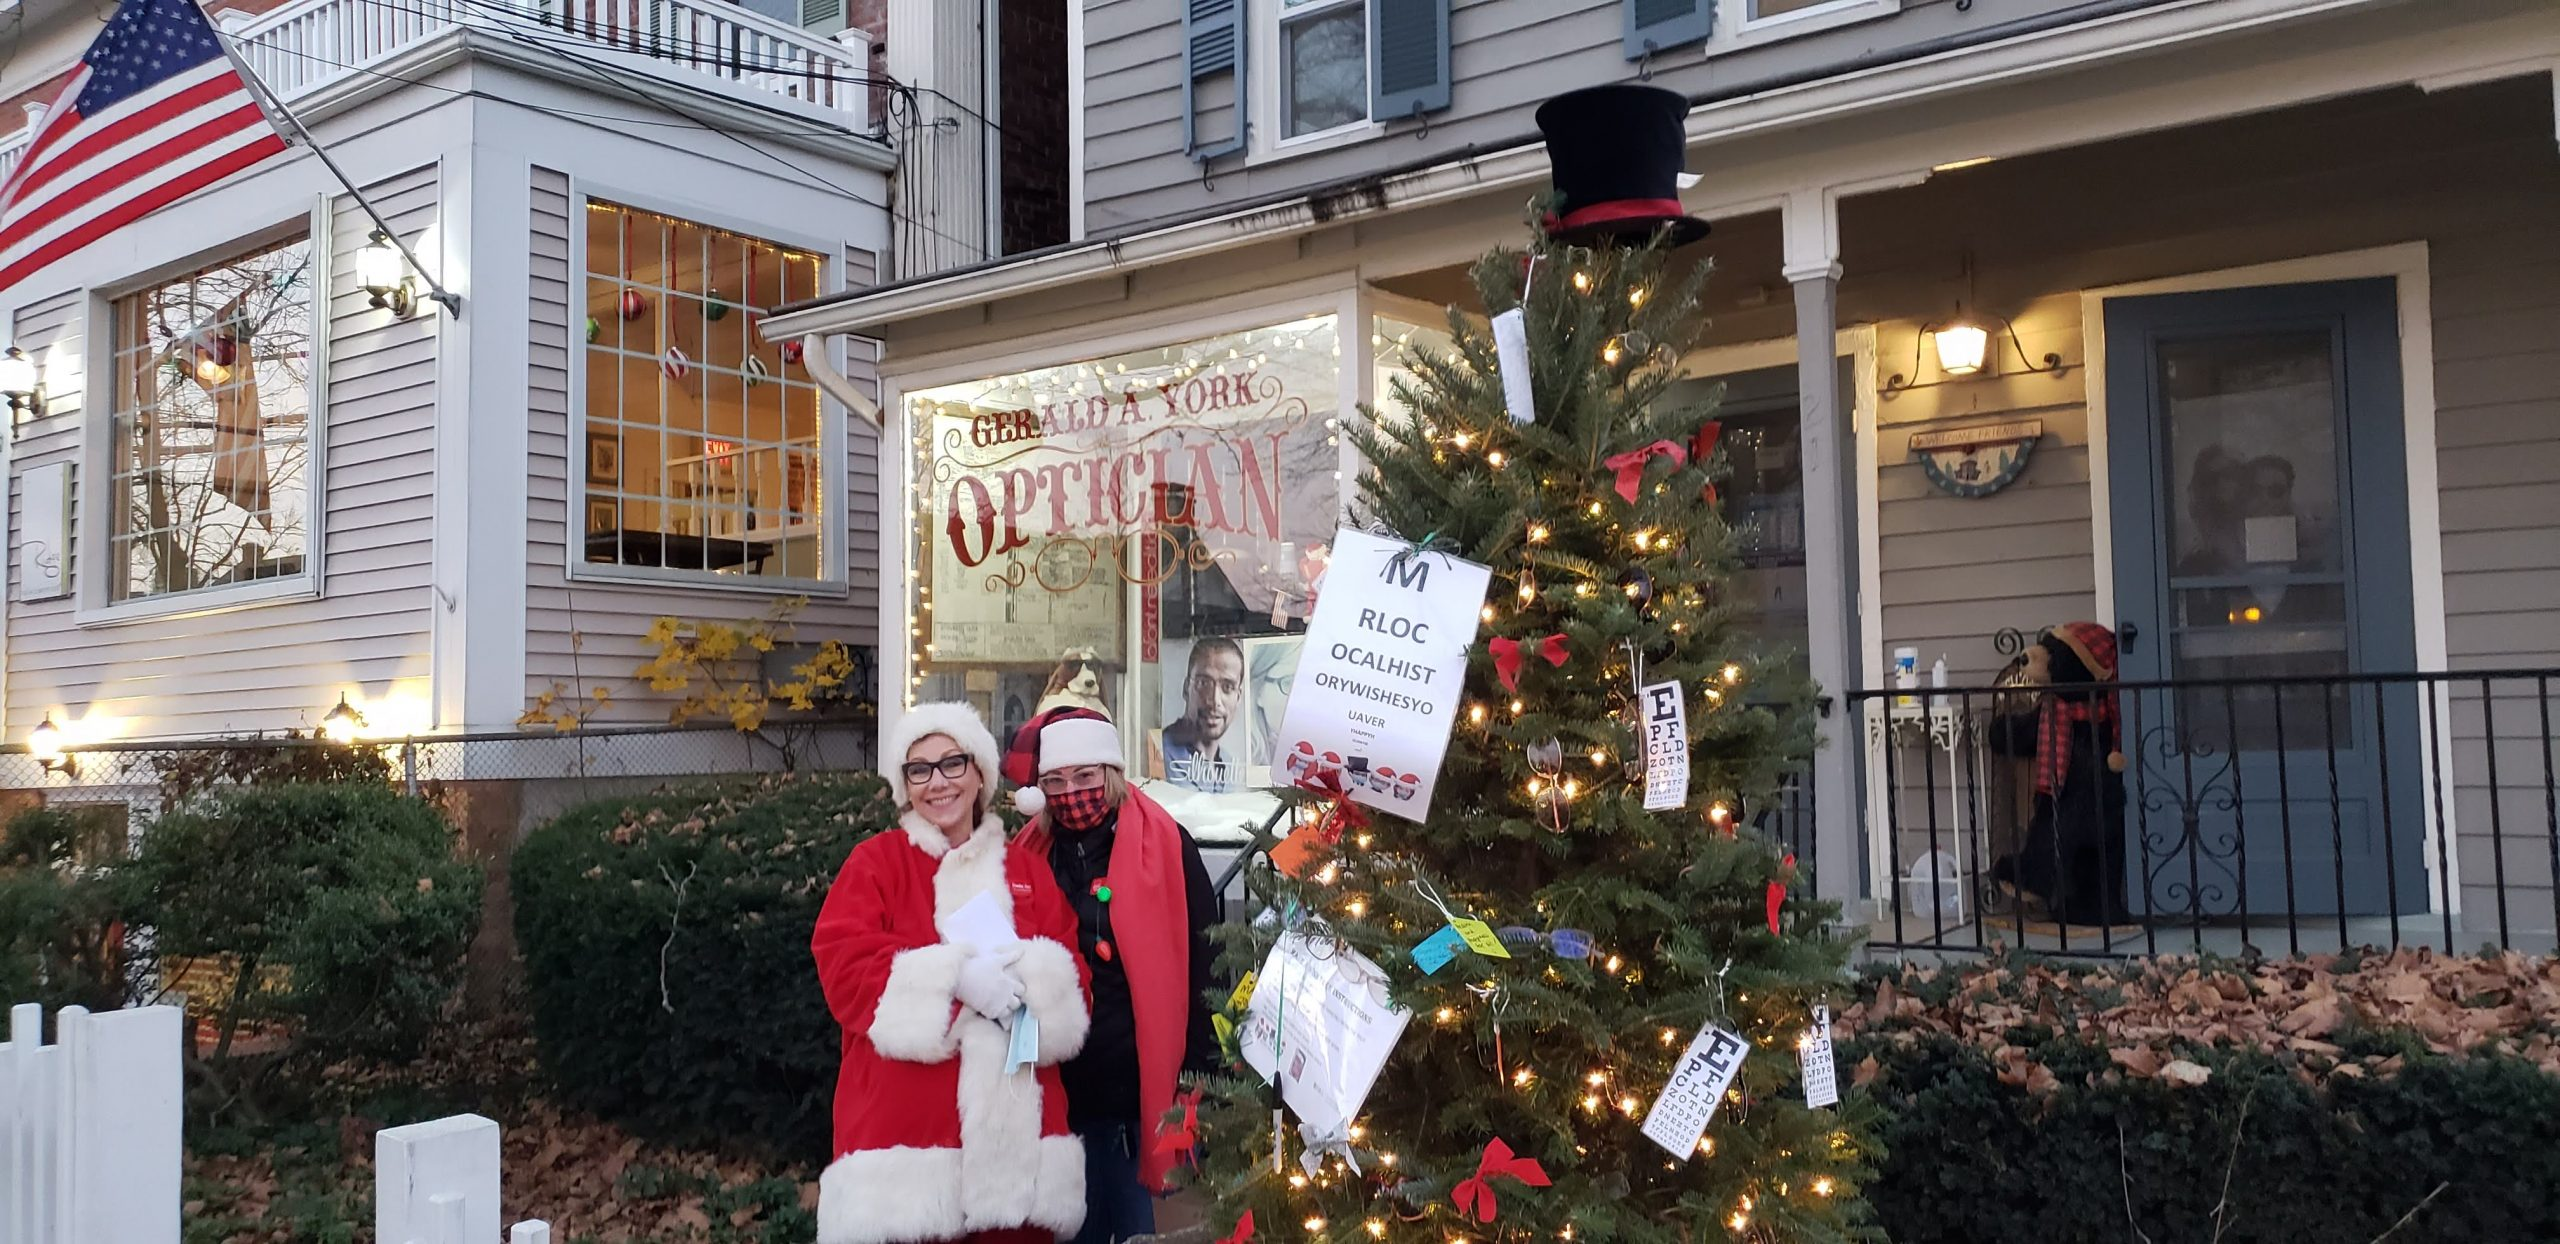 Basking Ridge Community Wish Tree - Mr Local History